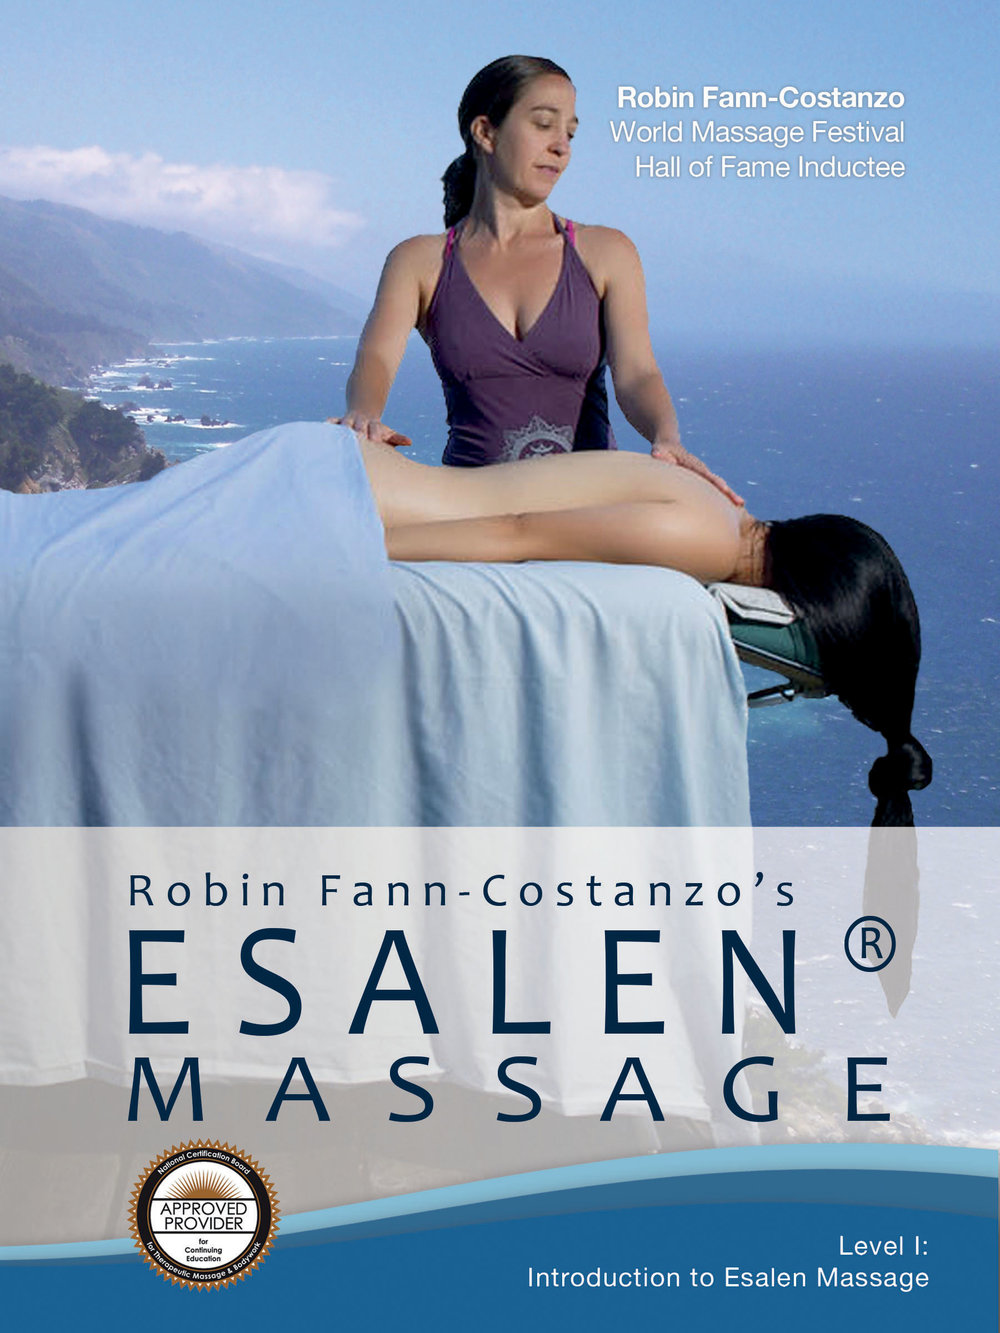 Robin Fann-Costanzo's Introduction to Esalen Massage